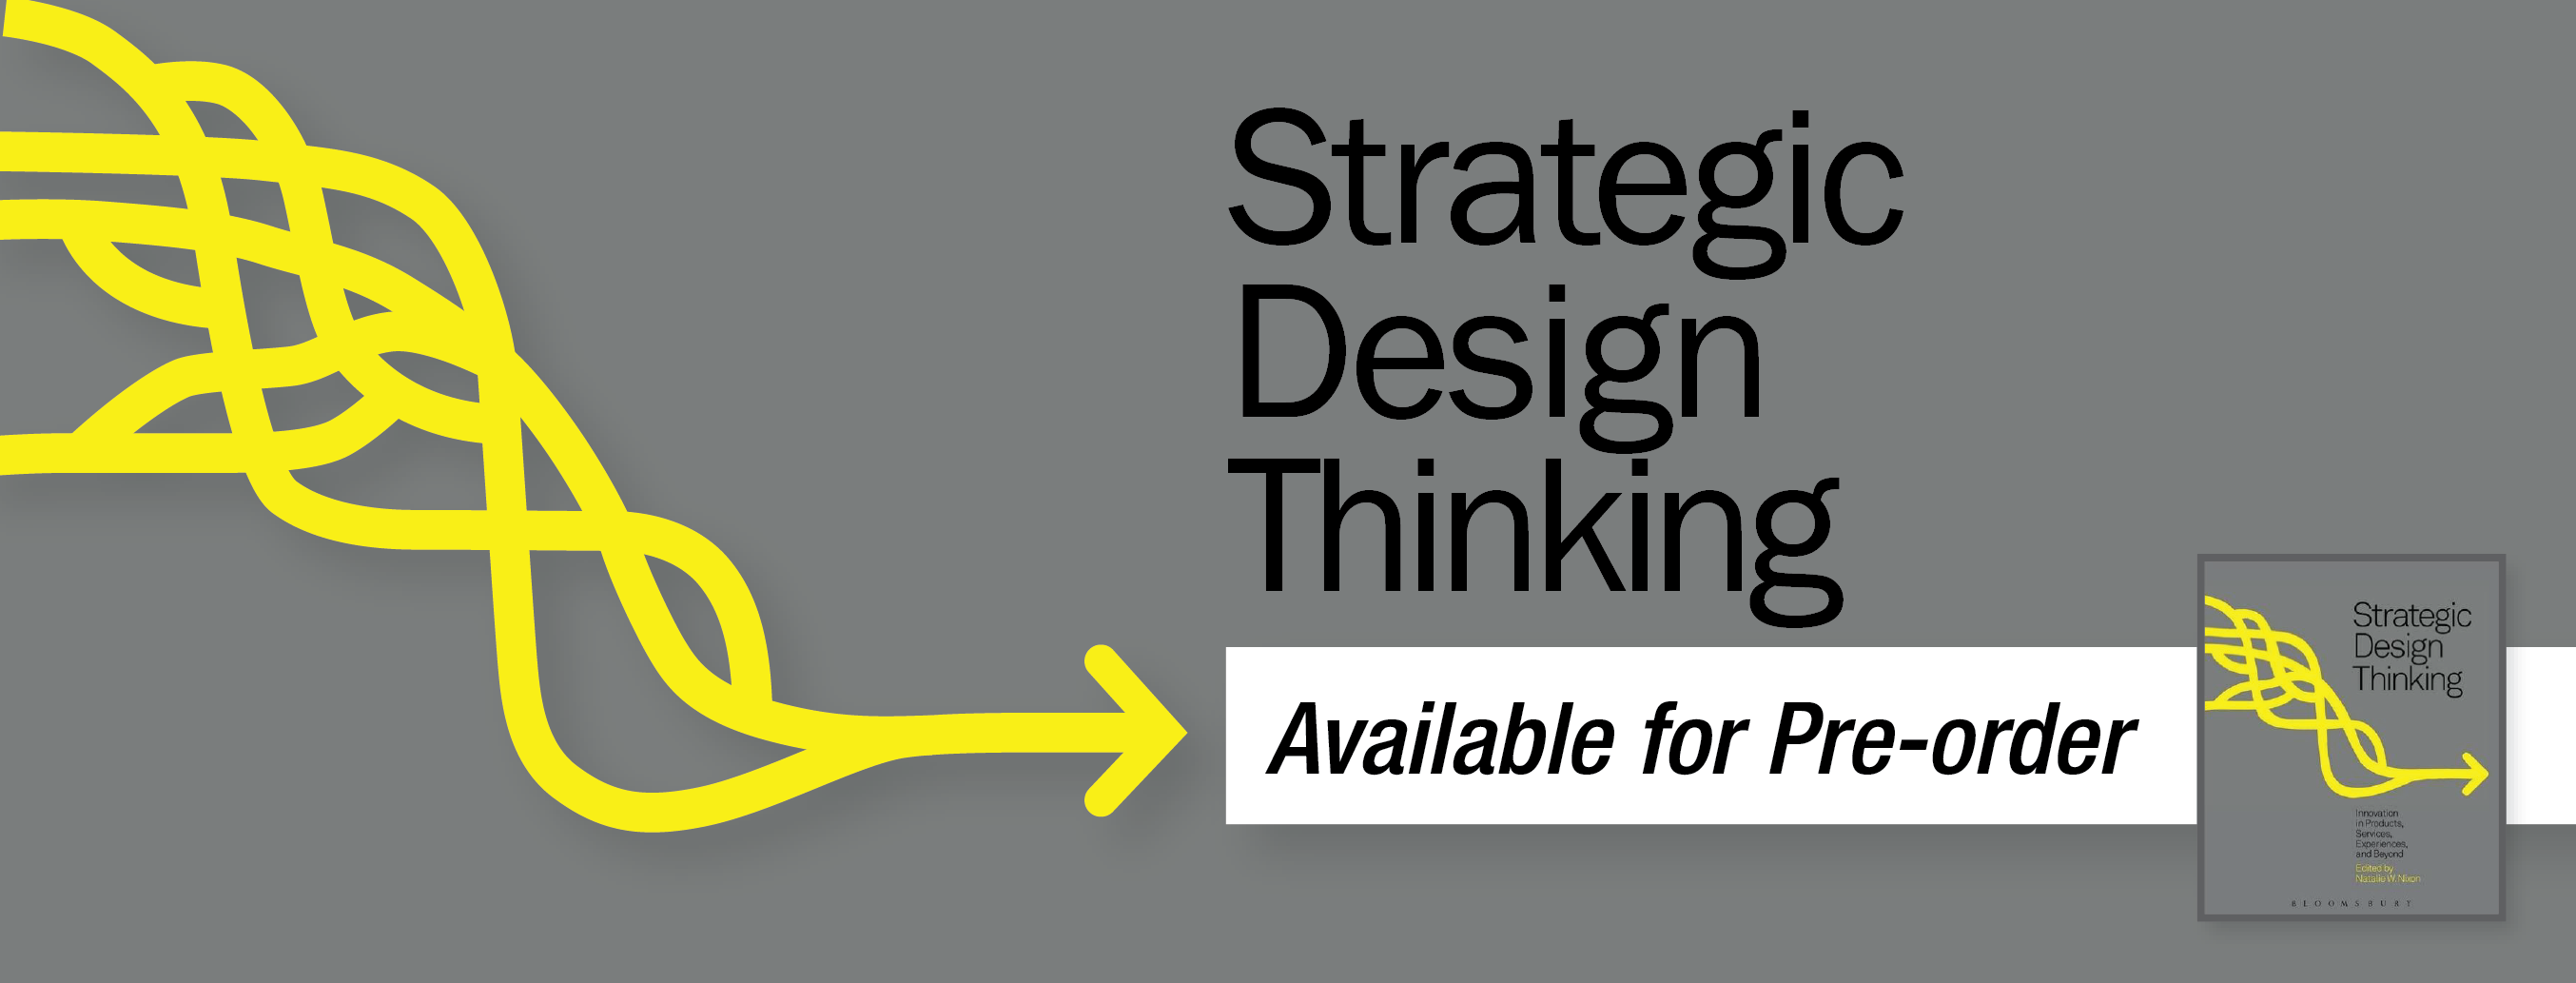 Strategic Design Thinking: Available for Pre-order